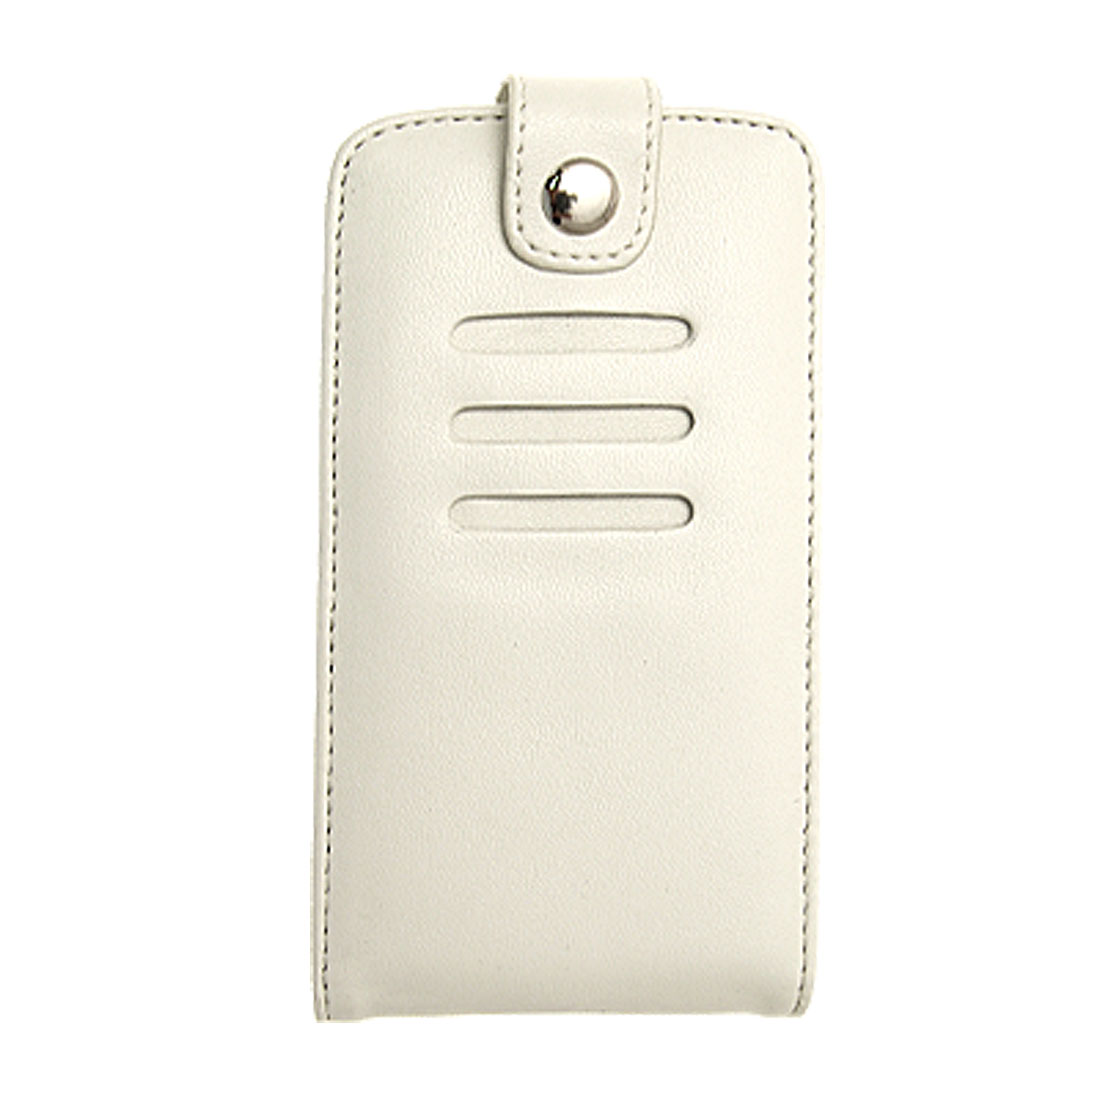 White Fastener Leather Case Cover w Belt Clip for iPhone 3G